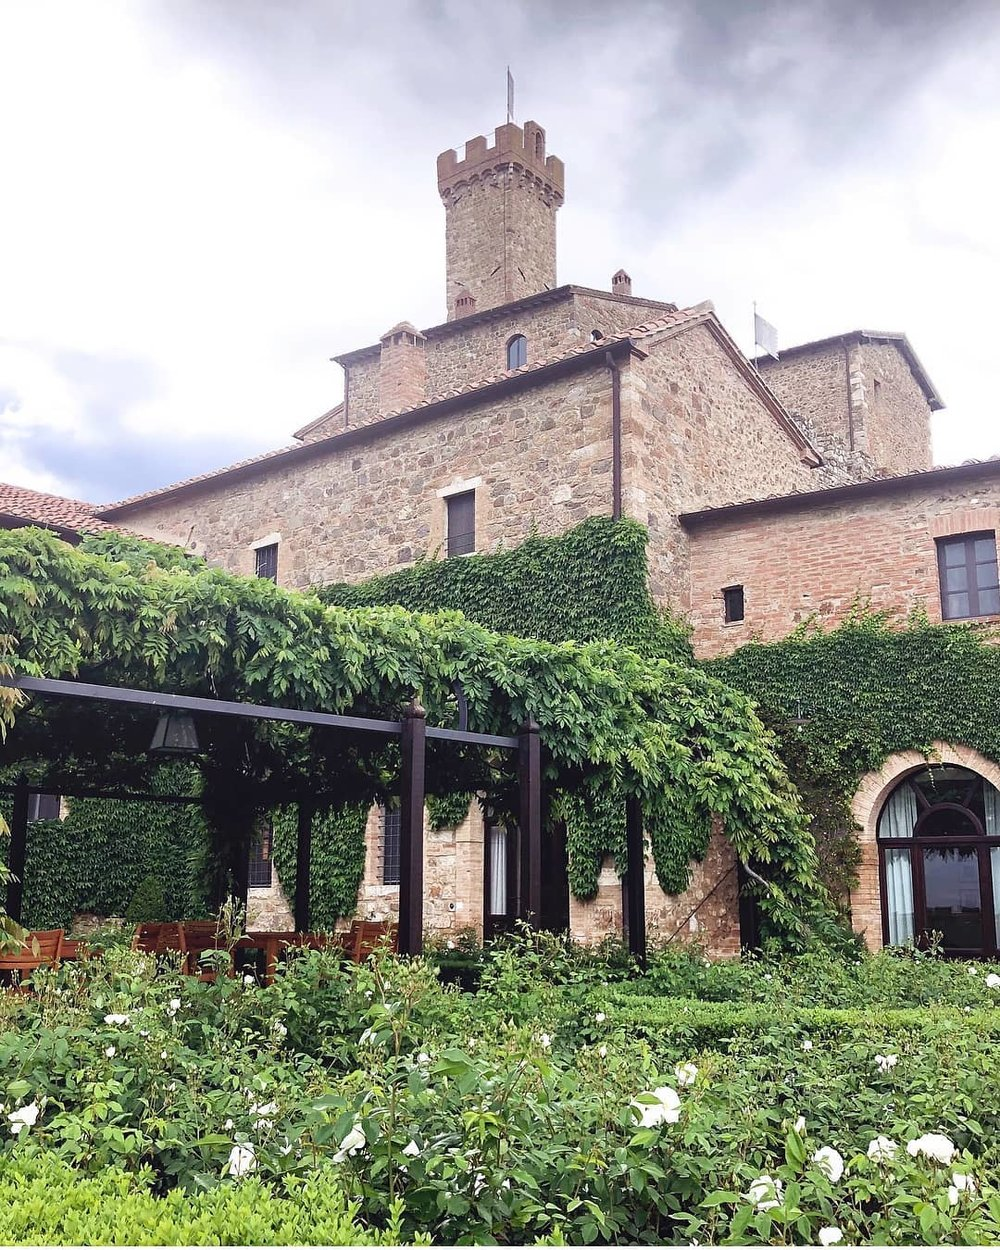 A Boutique Hotel Nestled Among Wine Country - Nestled in the hills of Montalcino, visitors will find not only one of Italy's finest wineries, but the rustic yet charming boutique Castello Banfi hotel. If exploring wine country is high on your list, these are the upscale accommodations you'll be needing. We highly recommend curling up with a book after a day trip to Sienna and soaking up the joys of this historic castle. Highlights of our stay included dinner and wine at the heavenly Sala dei Grappoli, adding to our knowledge of Italian wine with an exclusive Cellar Tour, sipping Aperol Spritz by the pool and spending a rainy afternoon in the incredibly stylish Reading Room. This spot is definitely a new #welltravelled favourite.Visit WebsiteMontalcino, Italy Phone: +39 057 787 7700Email: borgo@banfi.it